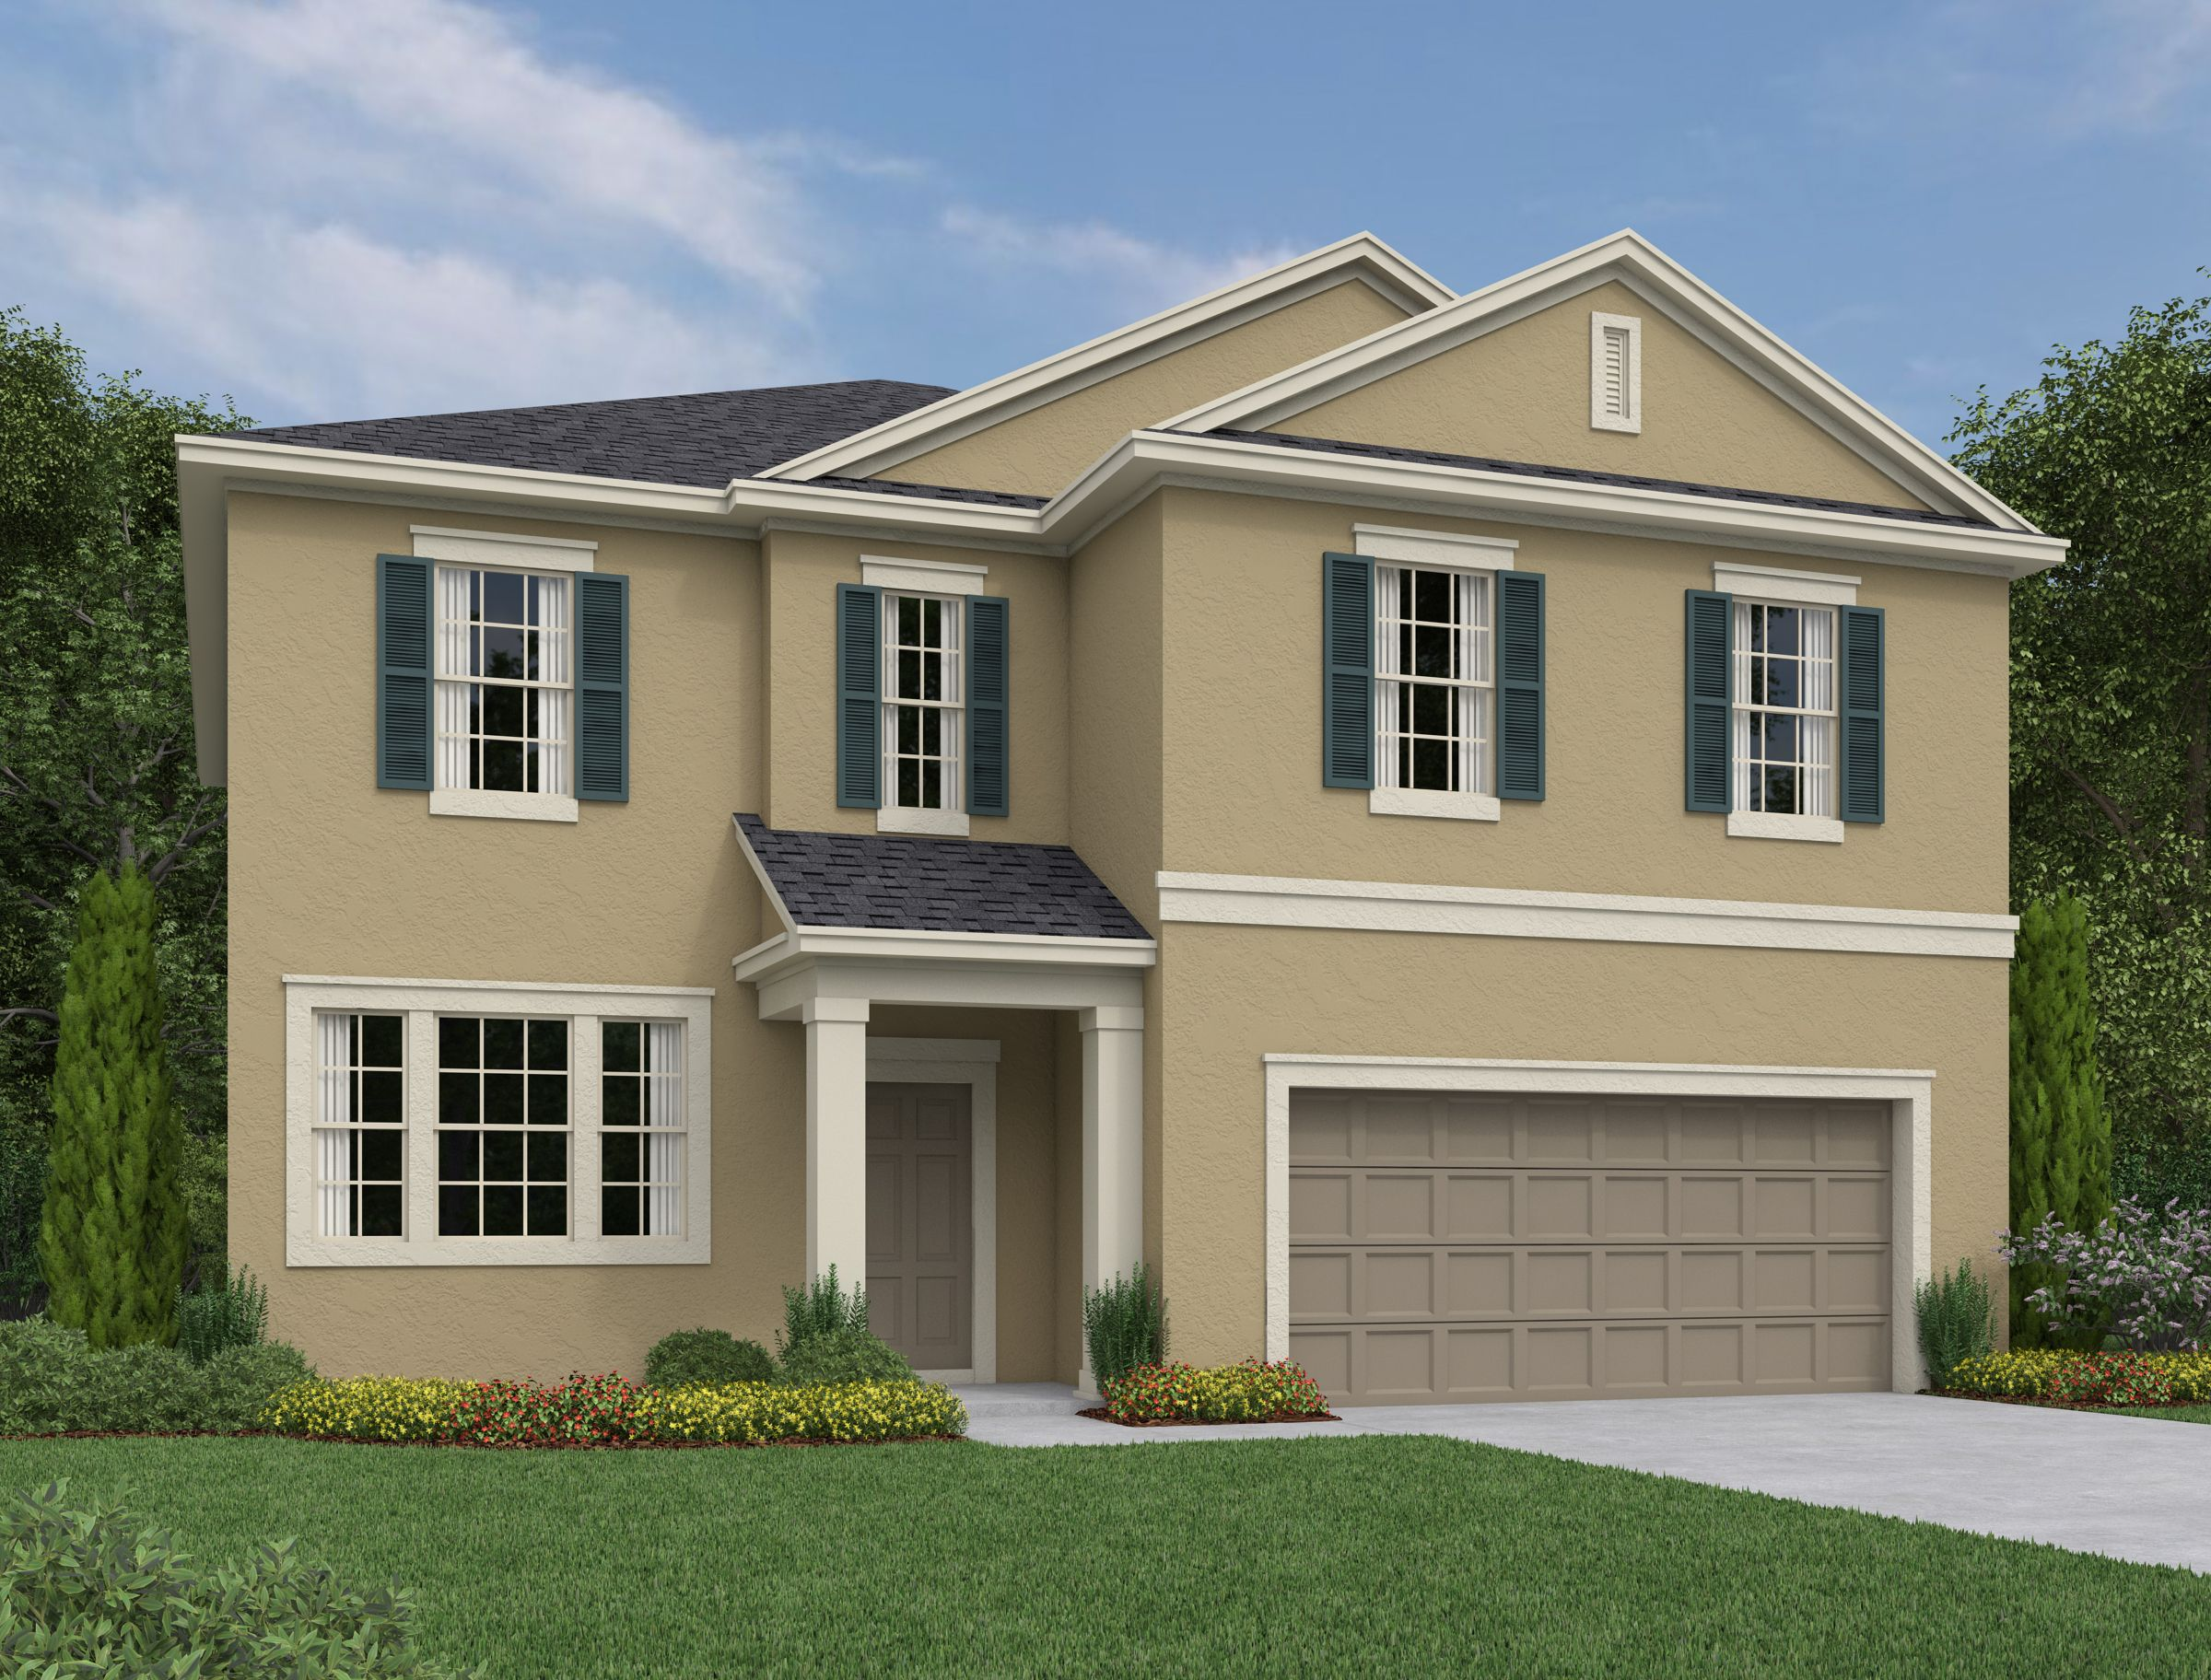 Monroe asturia in odessa for Adrian homes pre construction